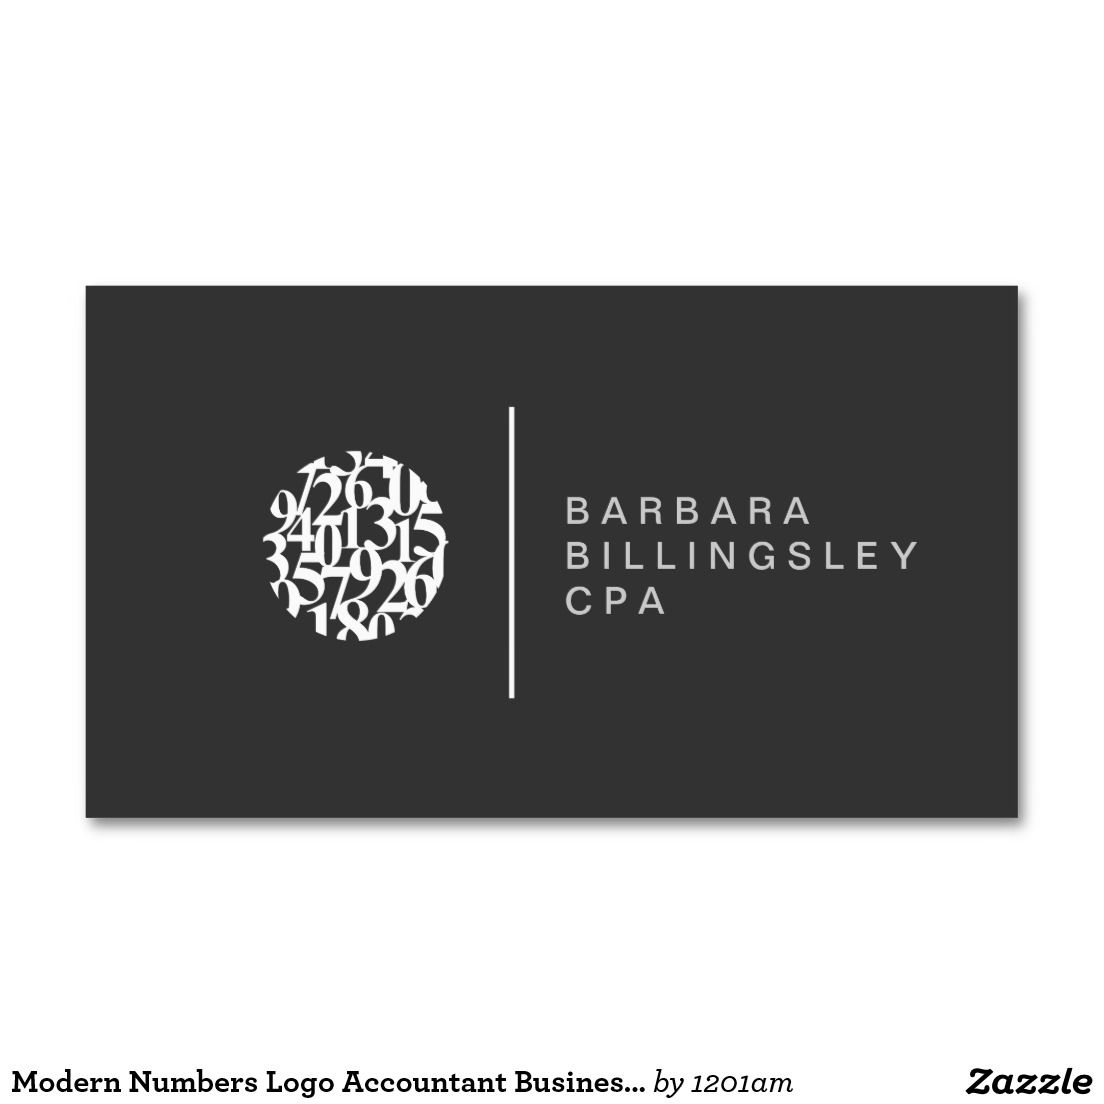 Modern Numbers Logo Accountant Business Card | Work life | Pinterest ...